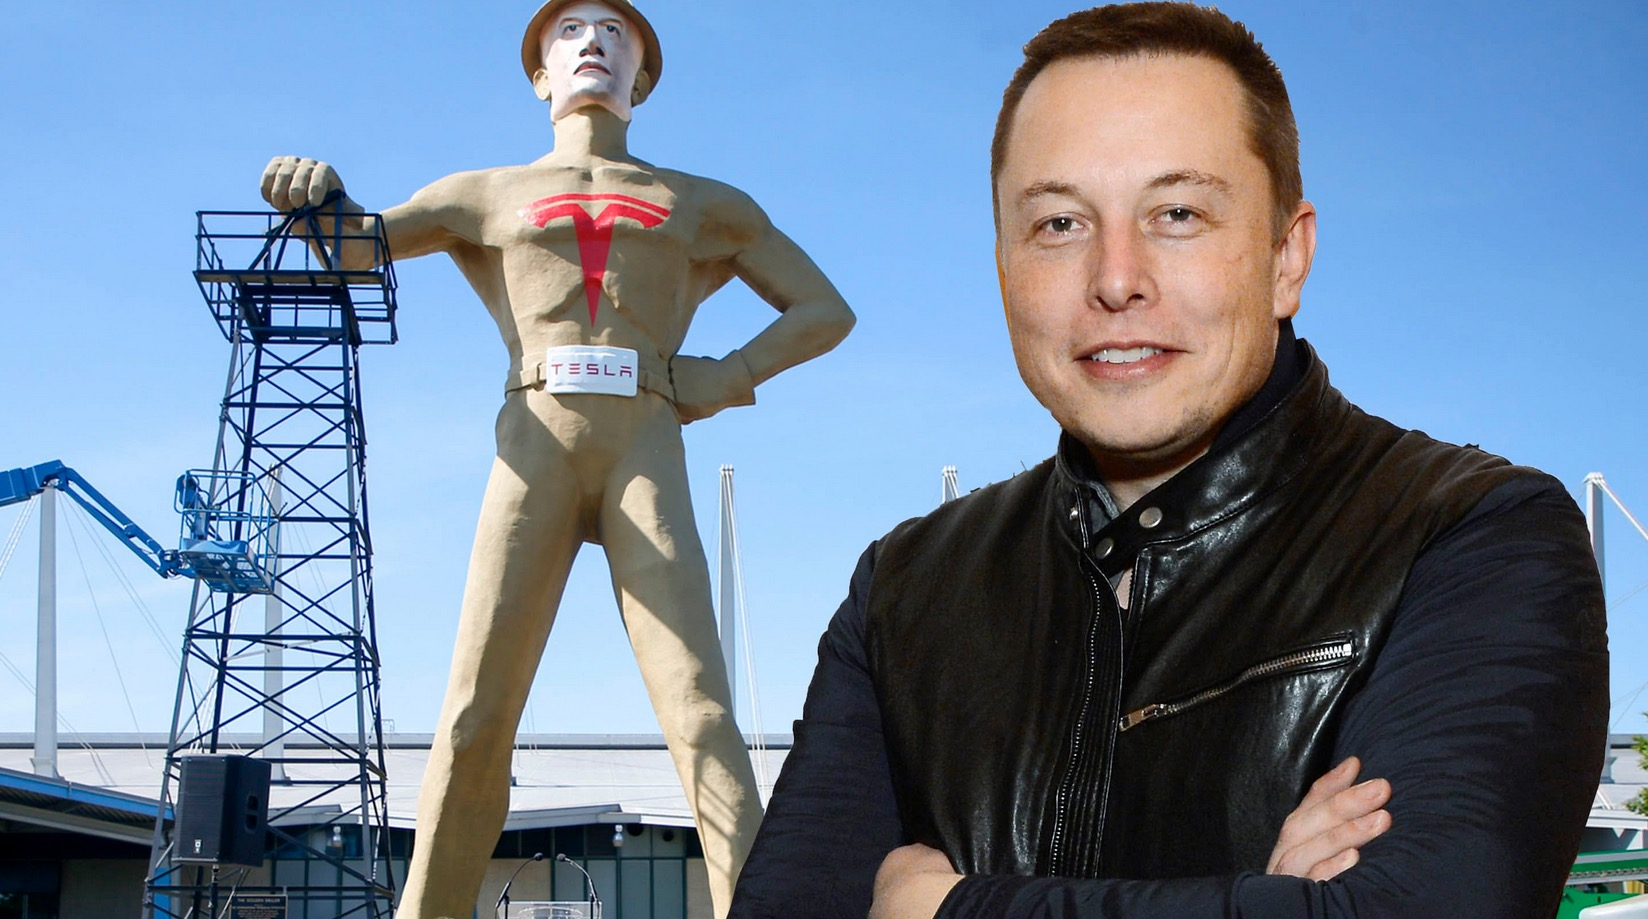 This Giant Monument To Elon Musk Has Tulsa Residents Furious